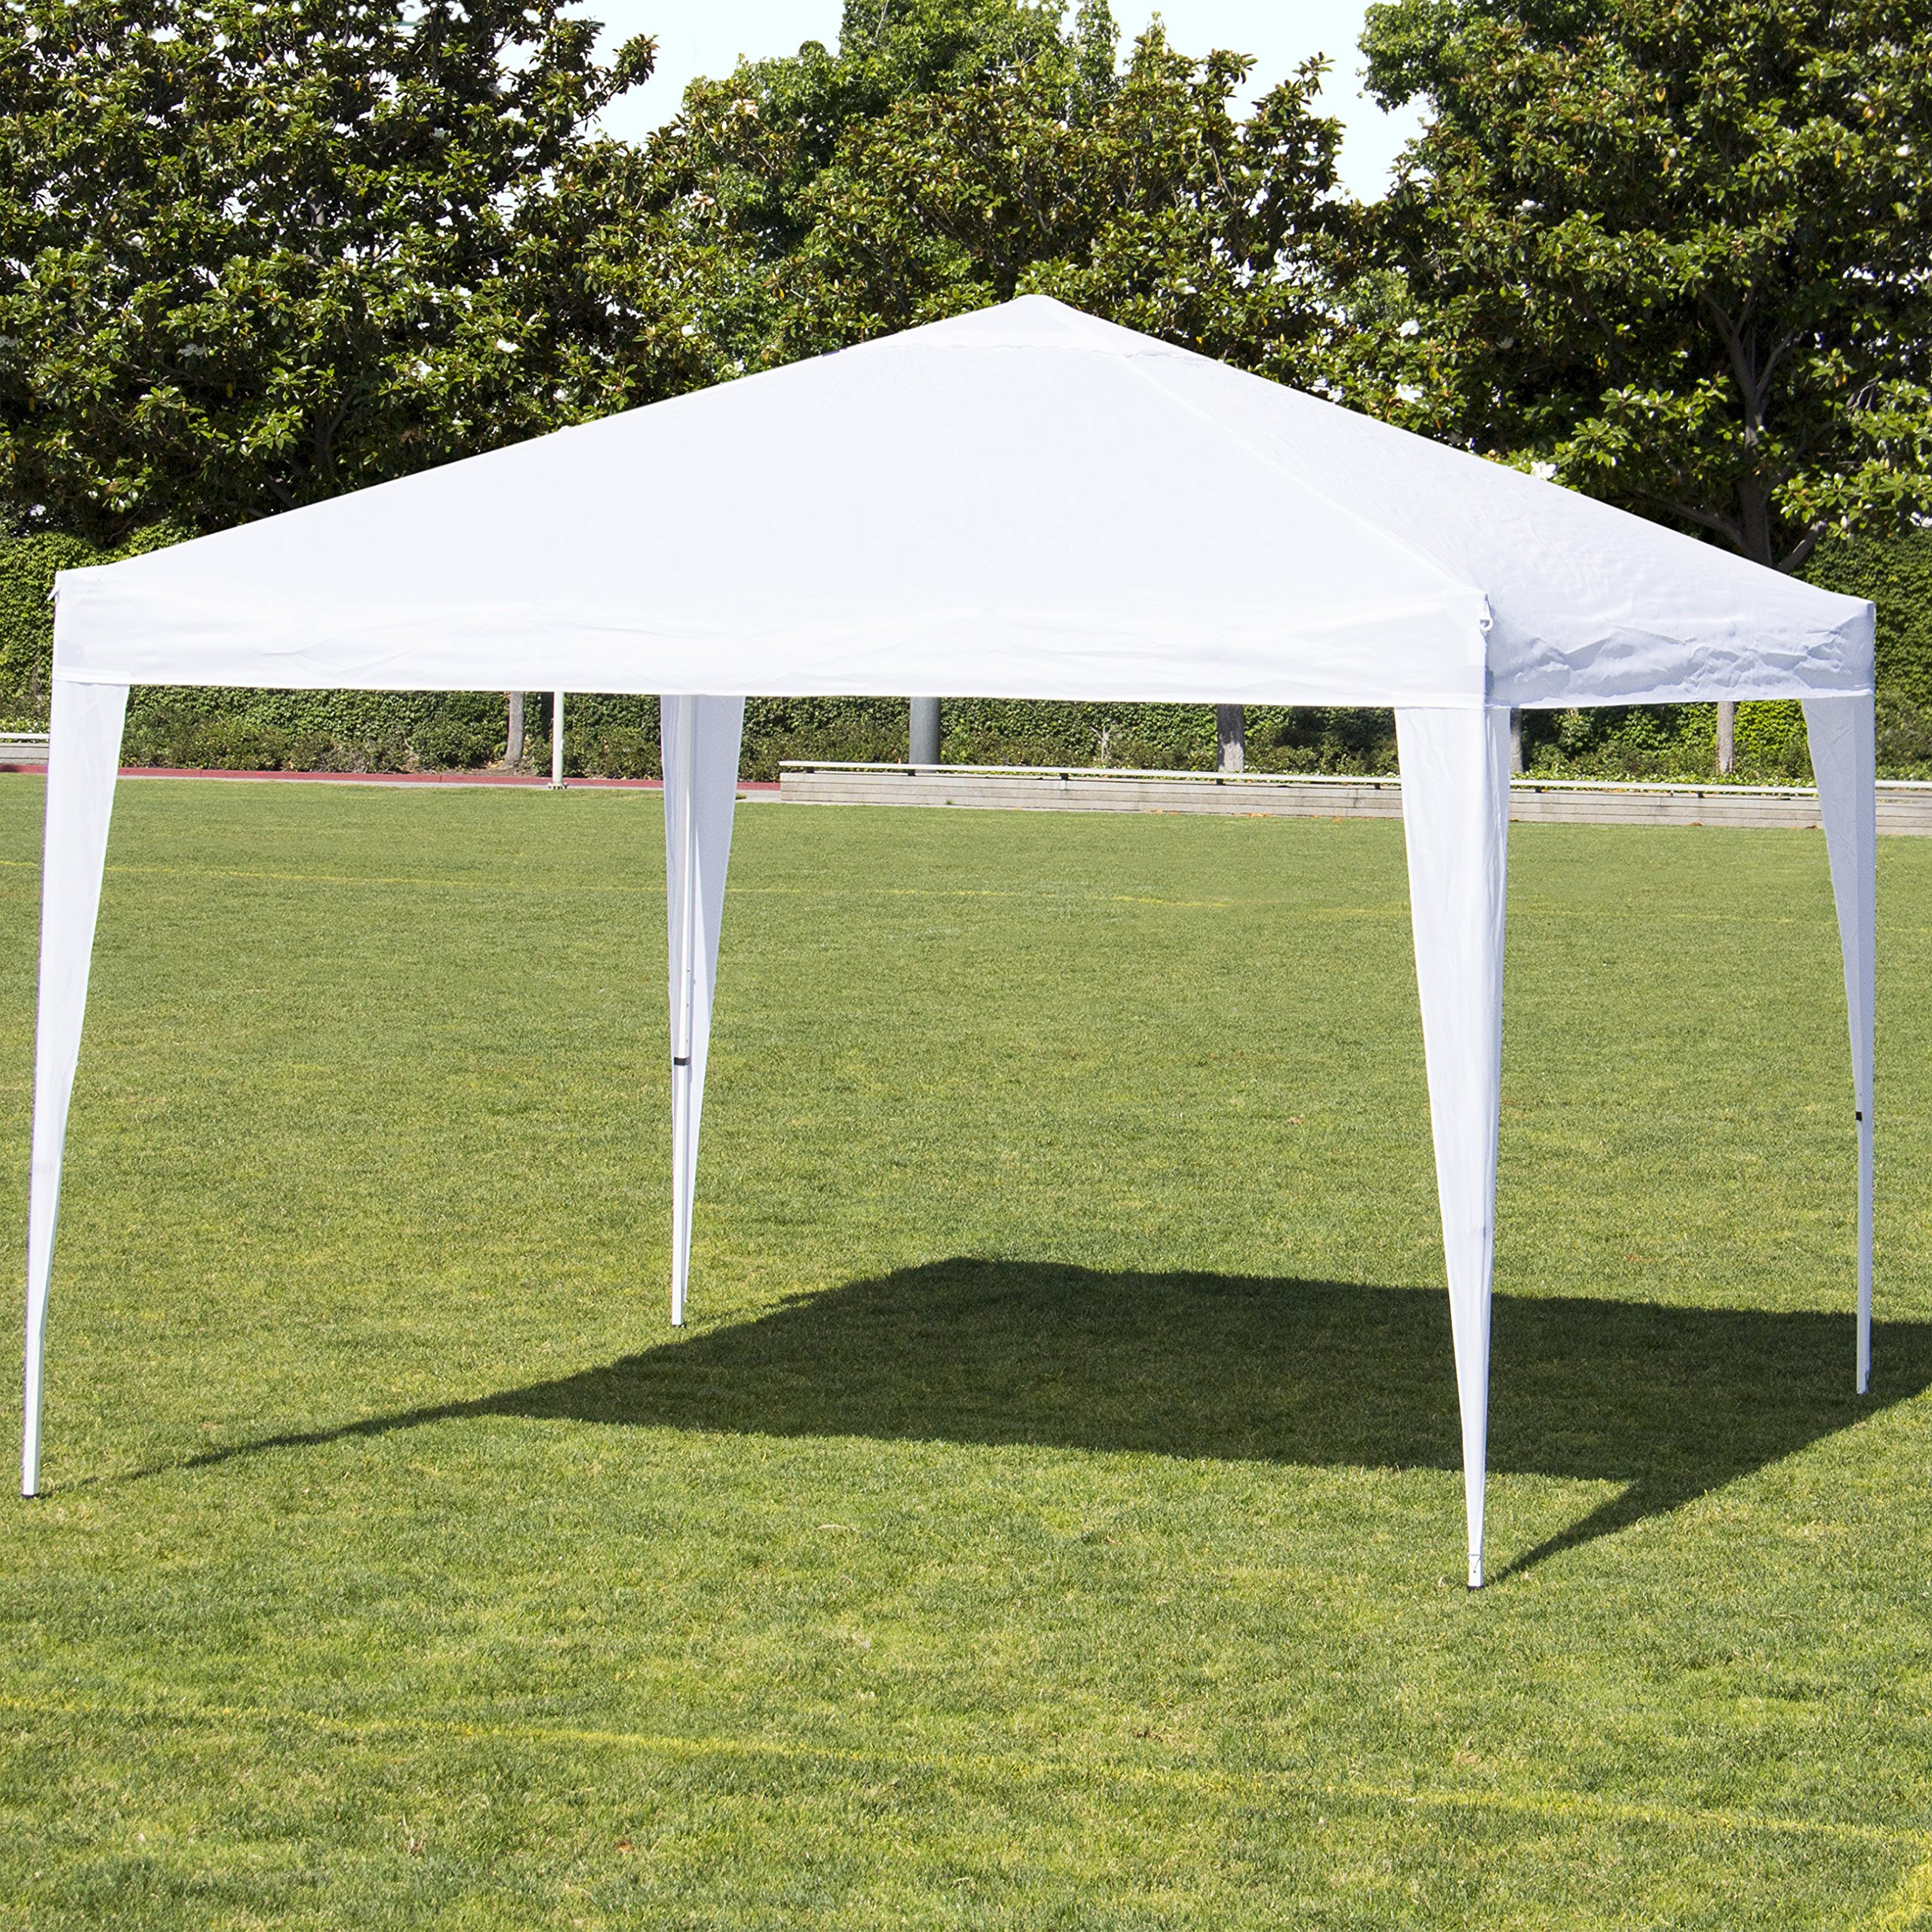 Best Choice Products 10x10ft Outdoor Portable Adjustable Lightweight Sturdy Instant Pop Up Gazebo Shade Canopy Tent w/Carrying Bag, Easy Assembly & No Tools Needed - White by Best Choice Products